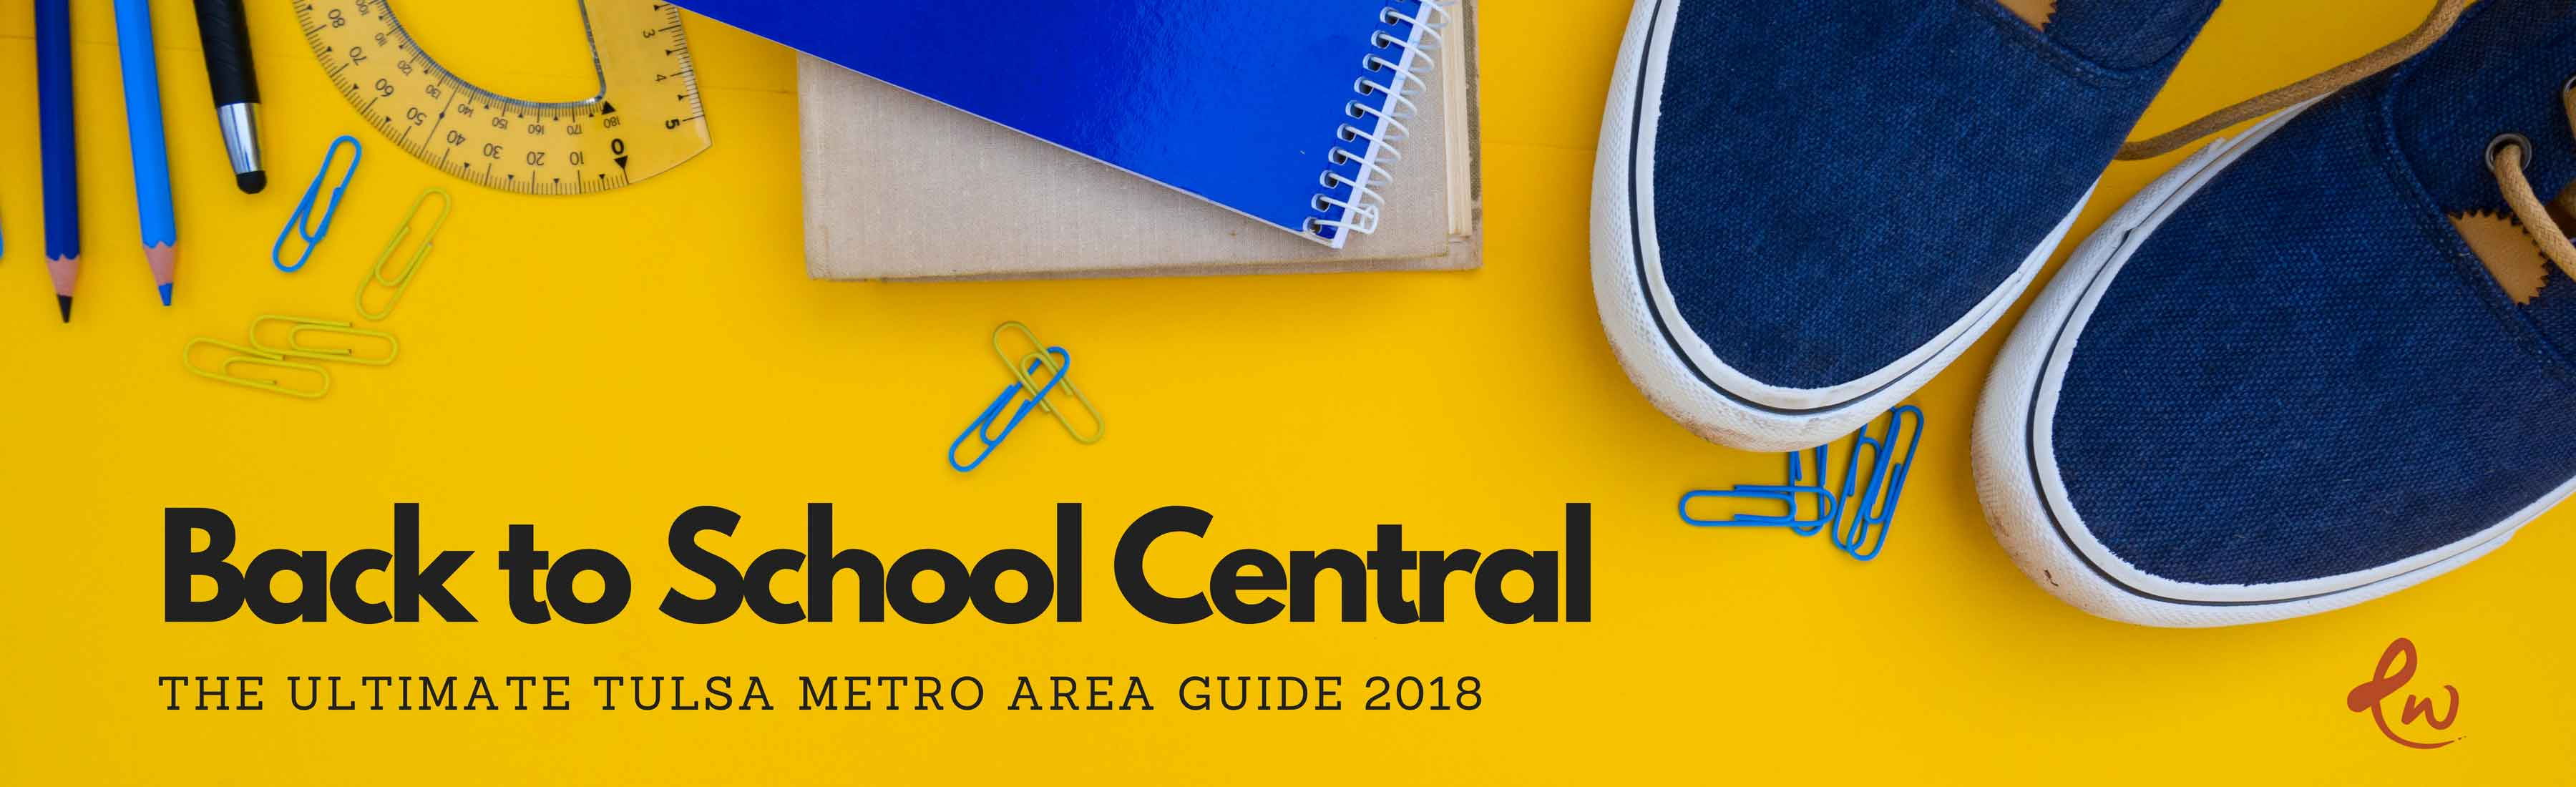 Back-to-School-Central-Slider-3600x1100_low-res